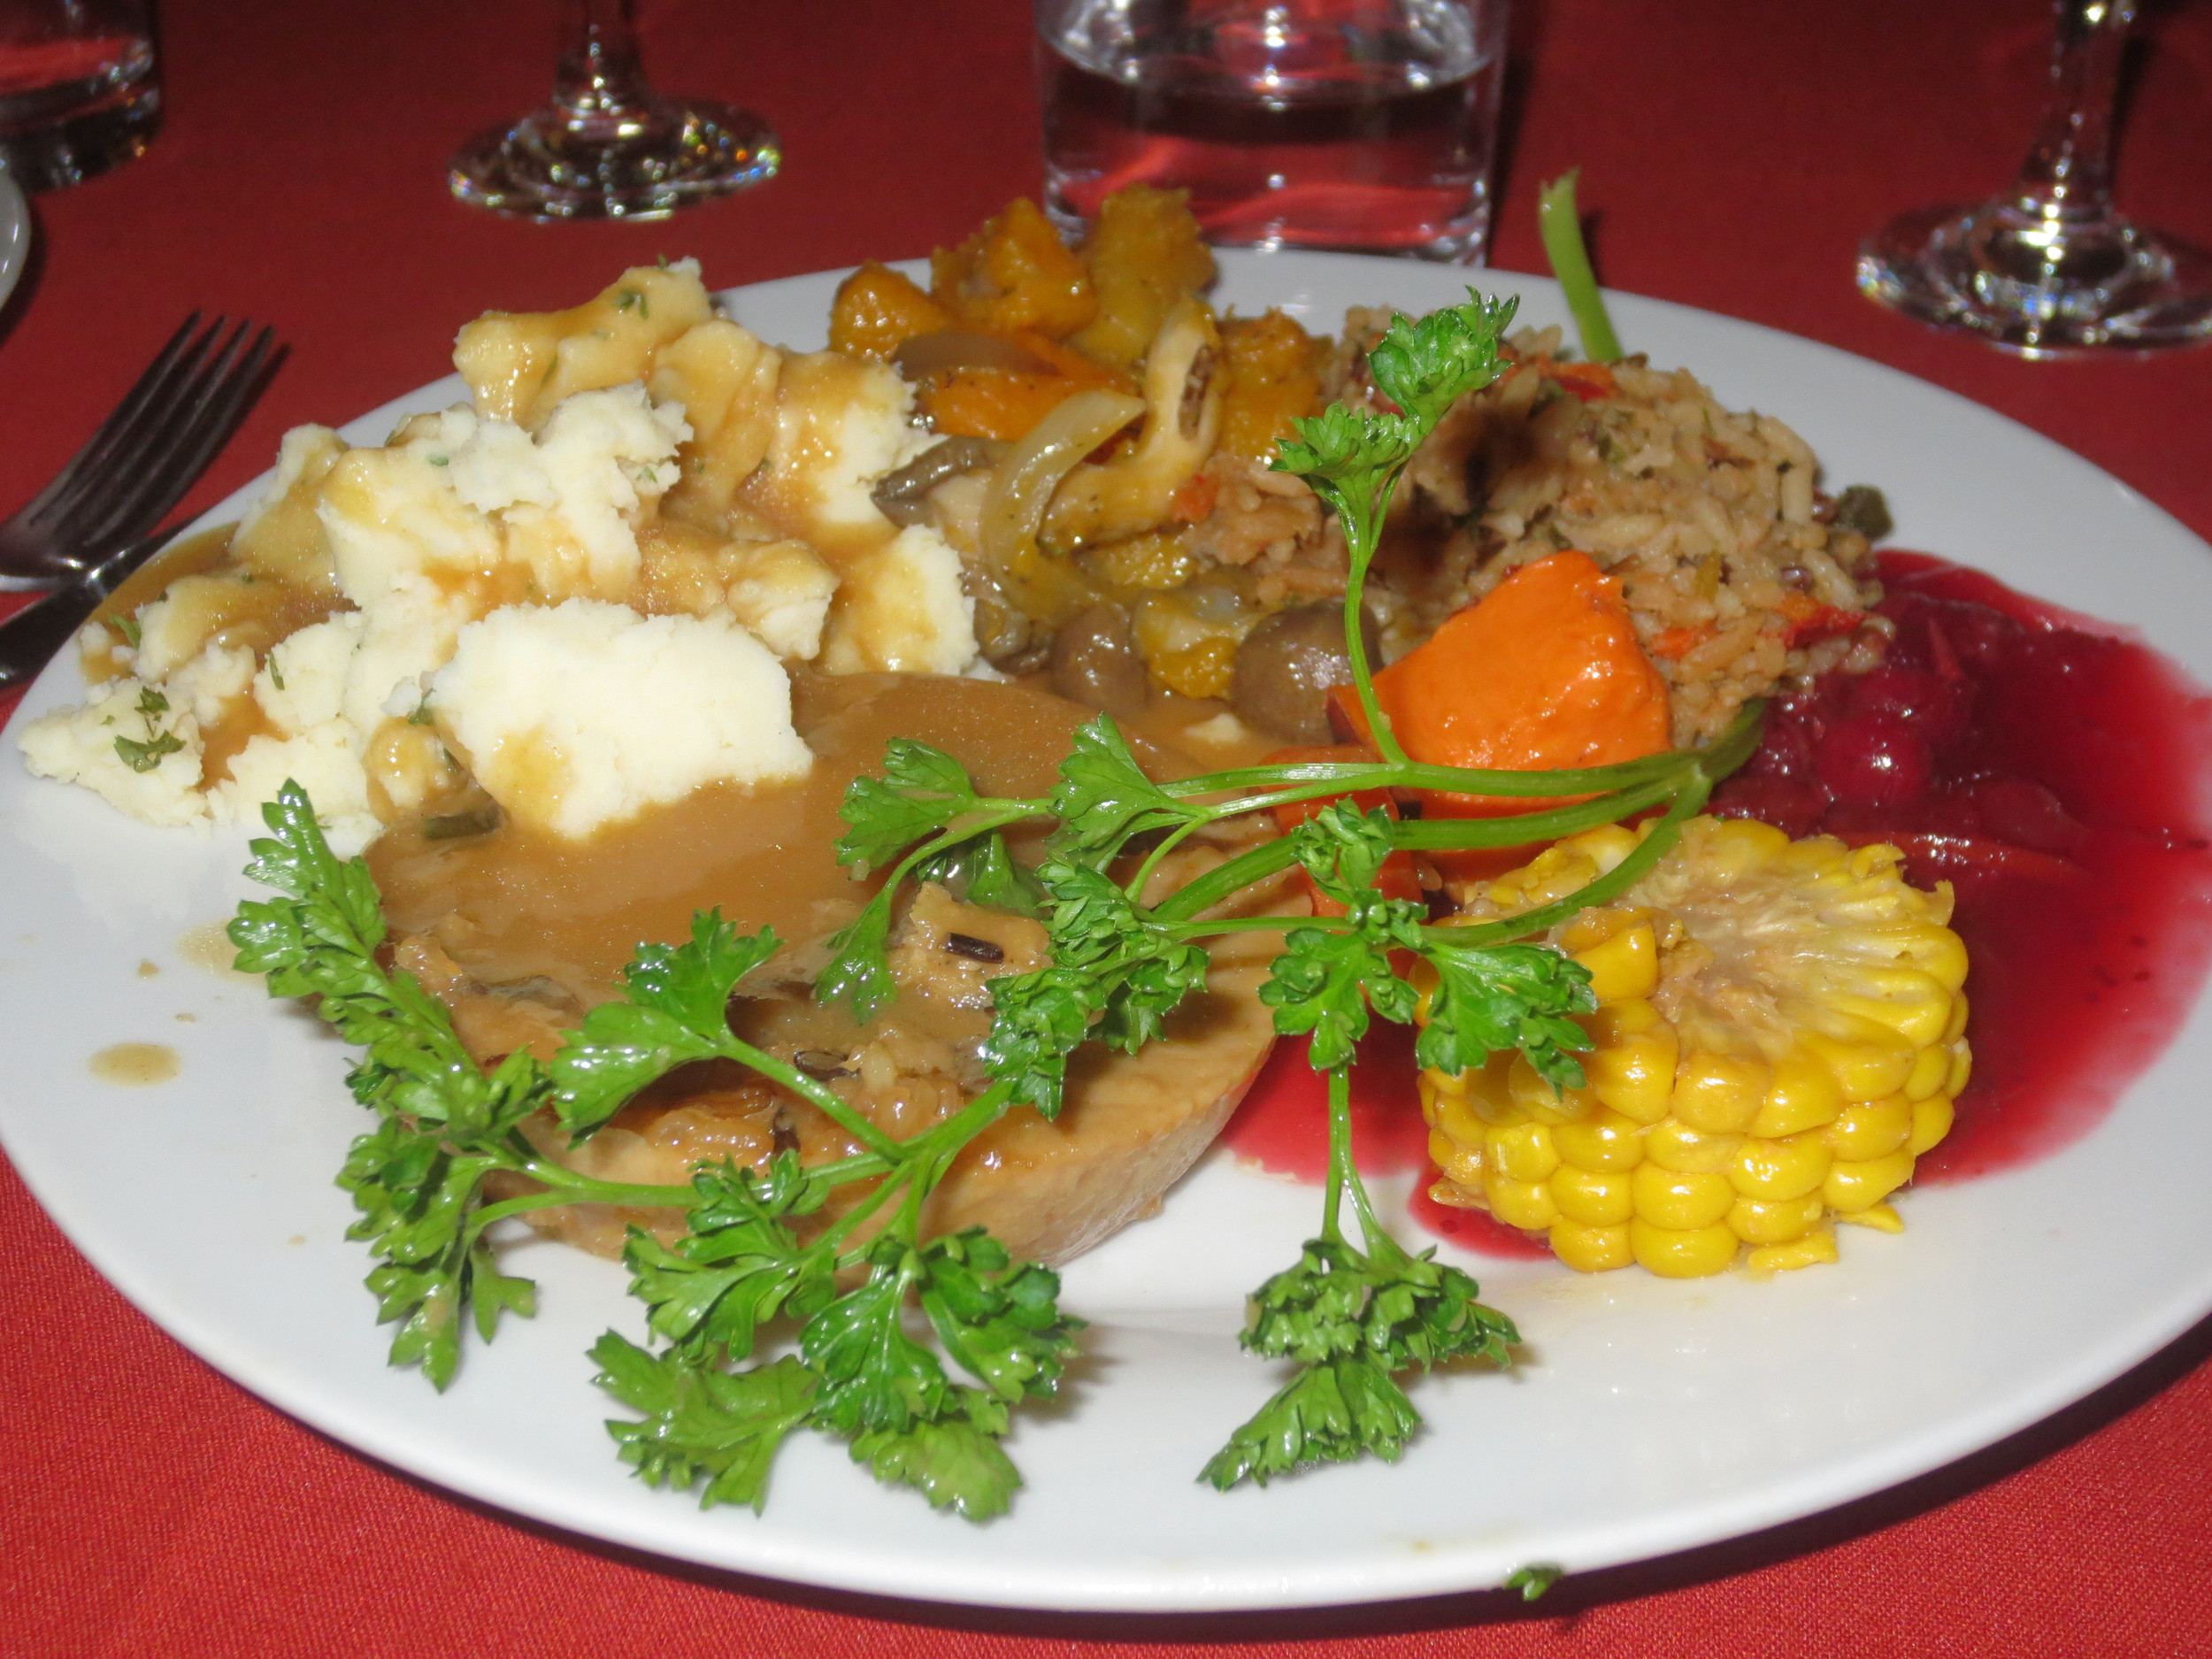 The vegan dinner featured Tofurky Roast filled with a Wild Rice and Whole Wheat Bread Crumb Stuffing, Garlic Mashed Potatoes, Rice Pilaf with Caramelized Onions, Sauteed Butternut Squash with Wild Mushrooms, Orange-Cranberry Compote, and Savory Gravy.